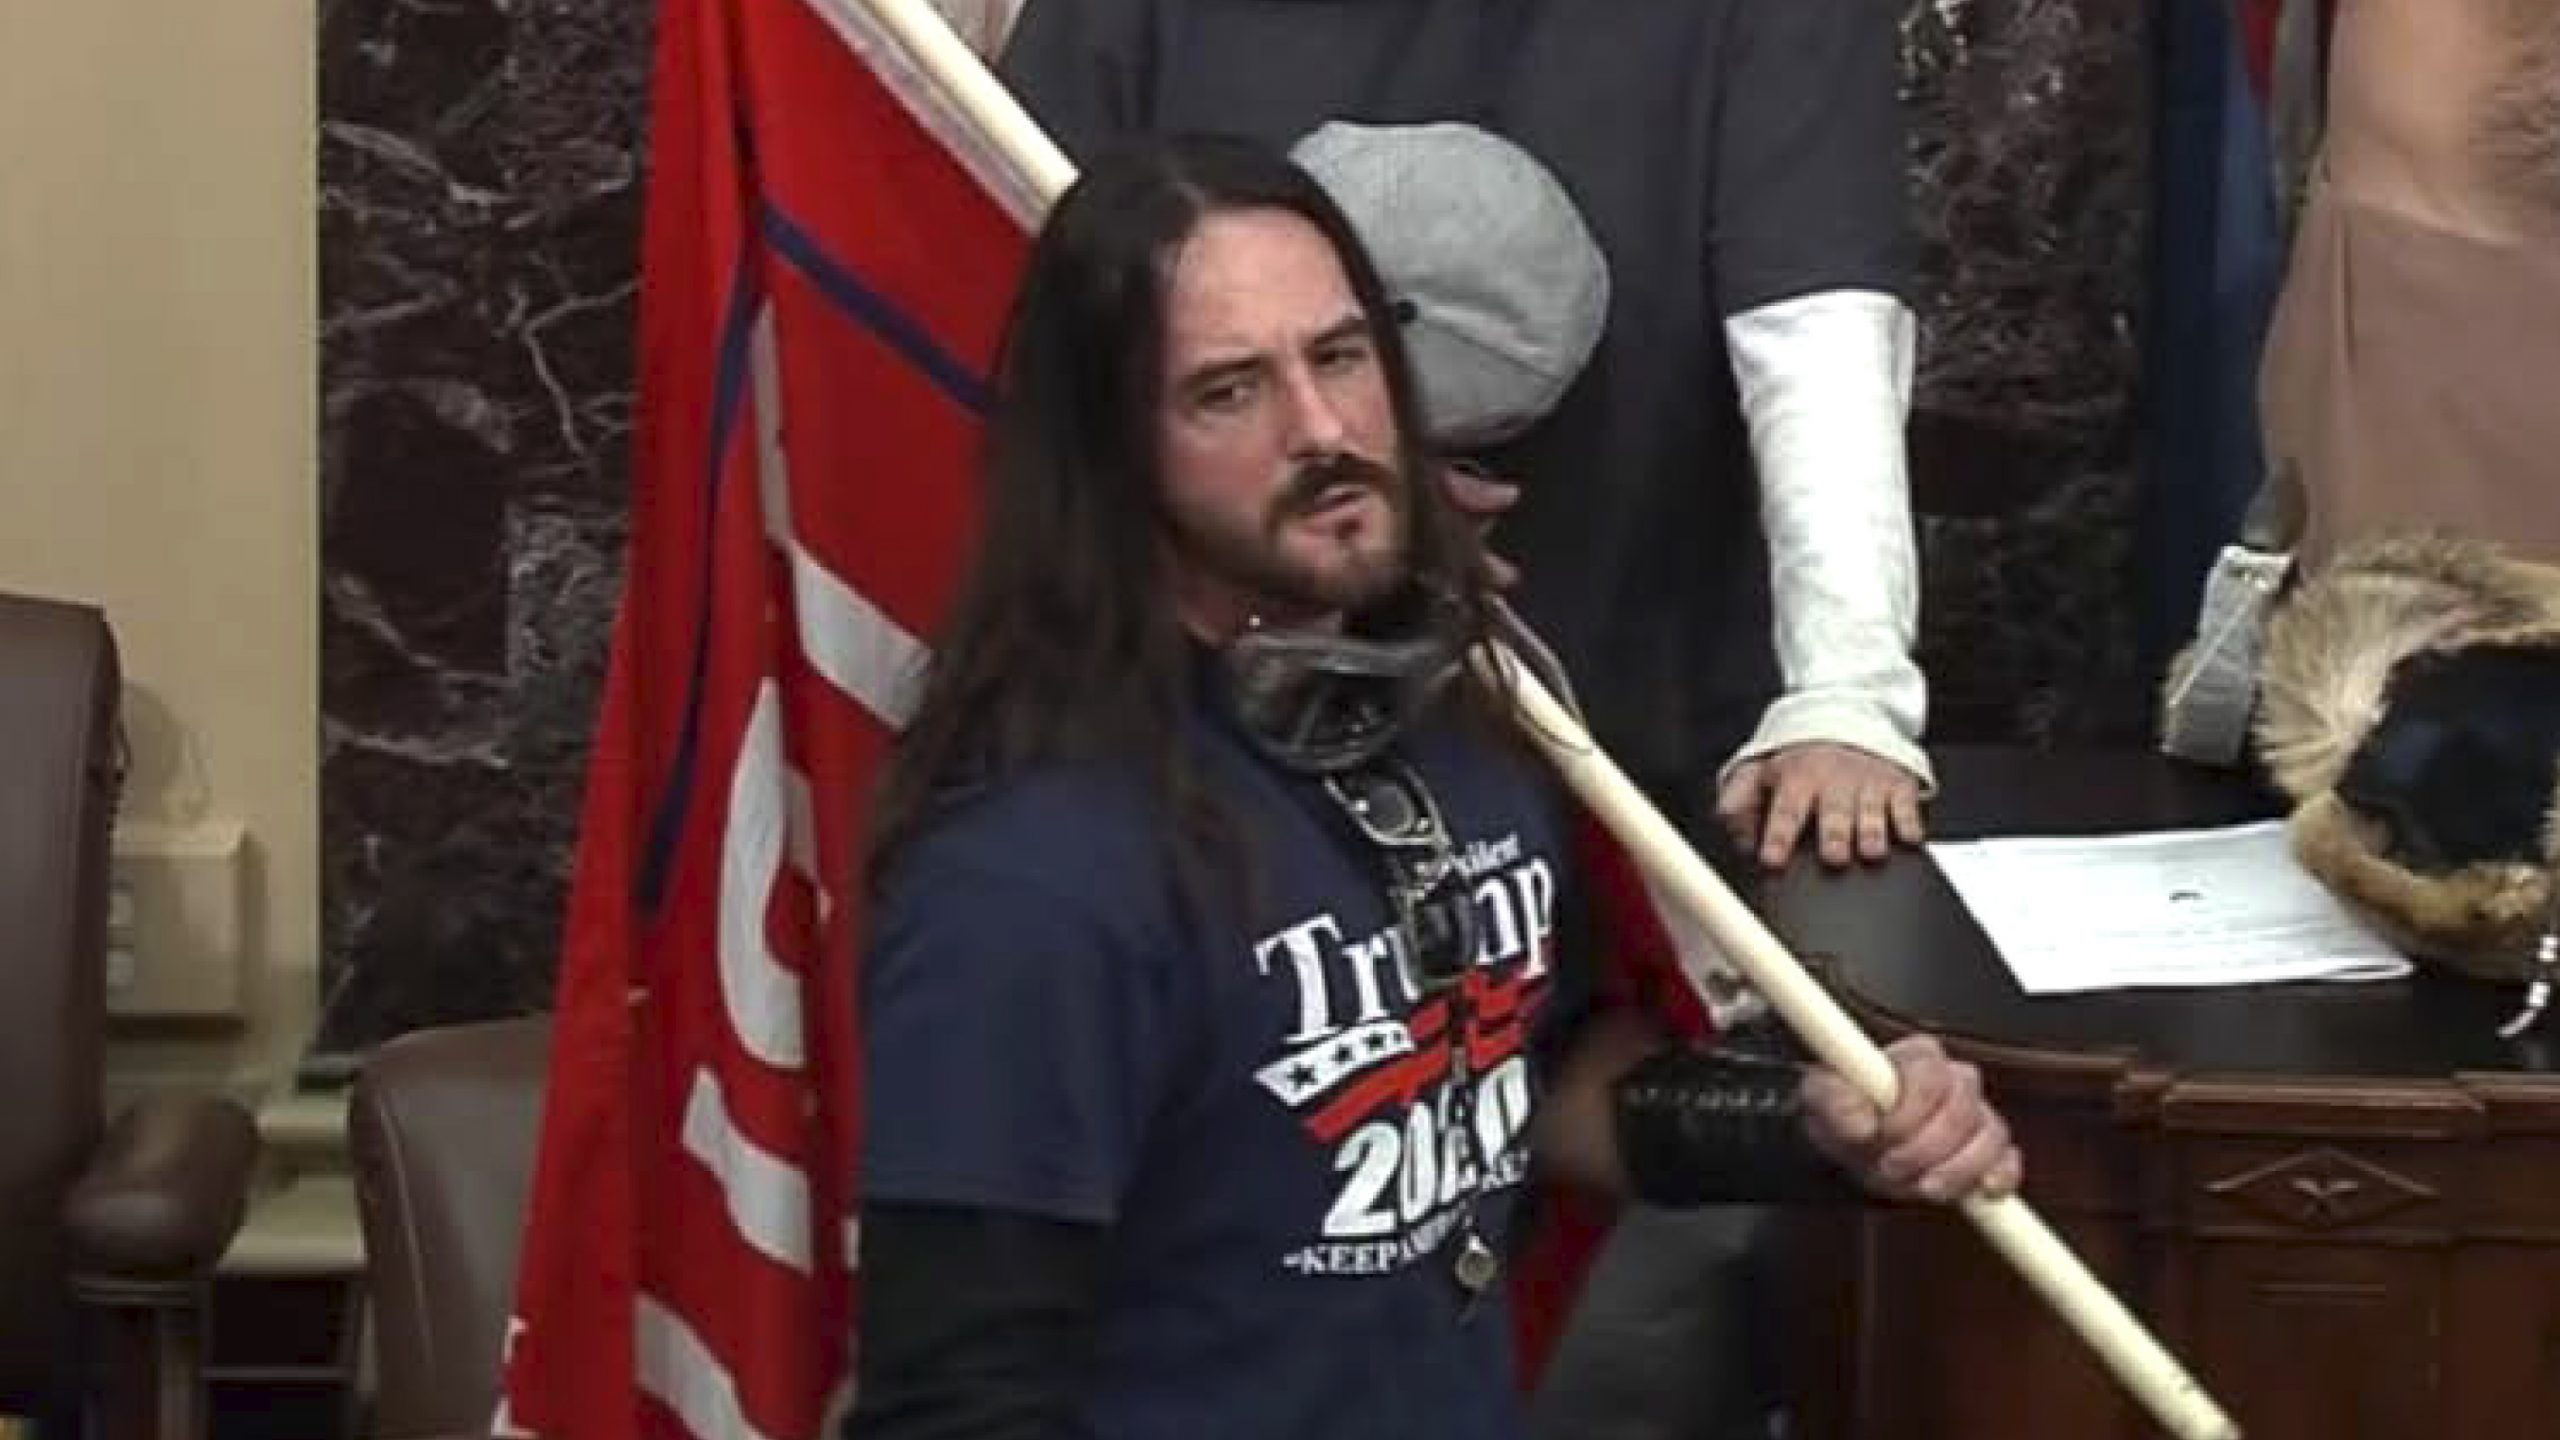 WSKGWSKGCapitol Rioter Who Walked On Senate Floor On Jan. 6 Sentenced To 8 Months In Prison